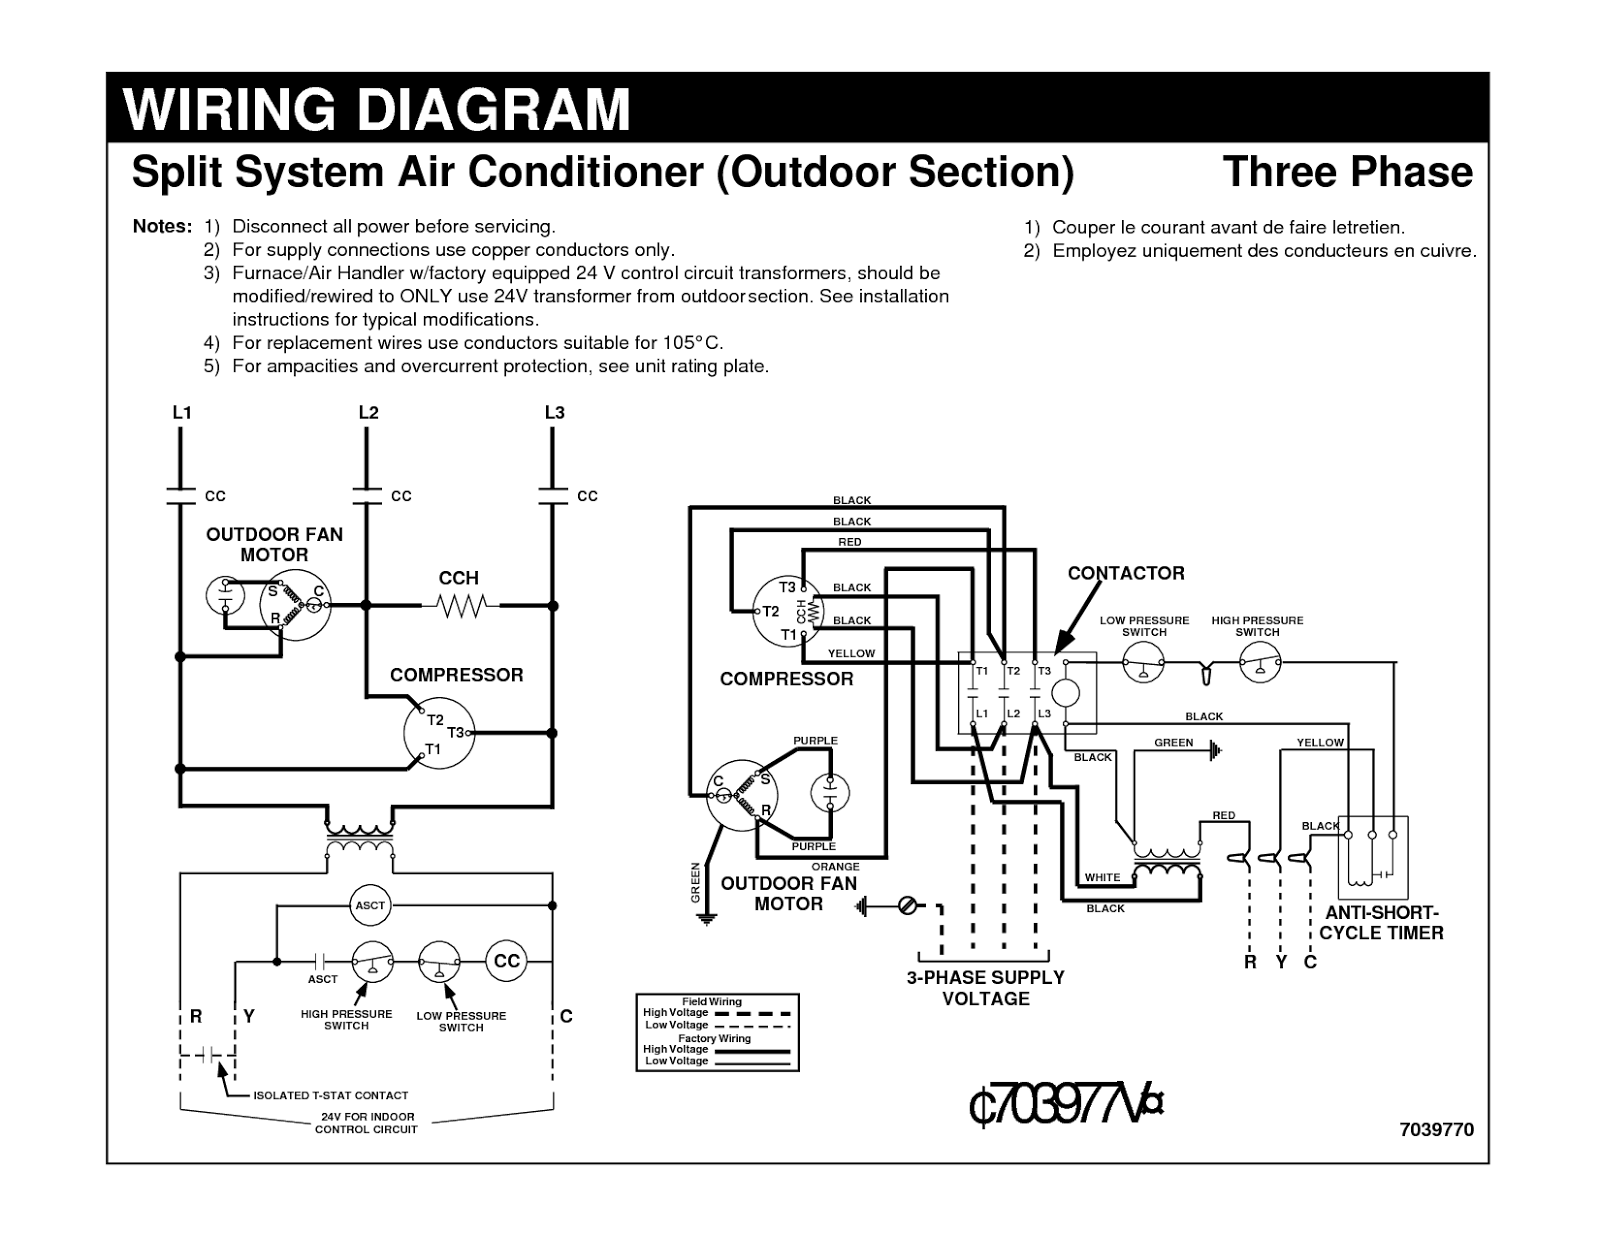 wiring+diagram+in+the+user+manual electrical wiring diagrams for air conditioning systems part one central air conditioner wiring diagram at n-0.co